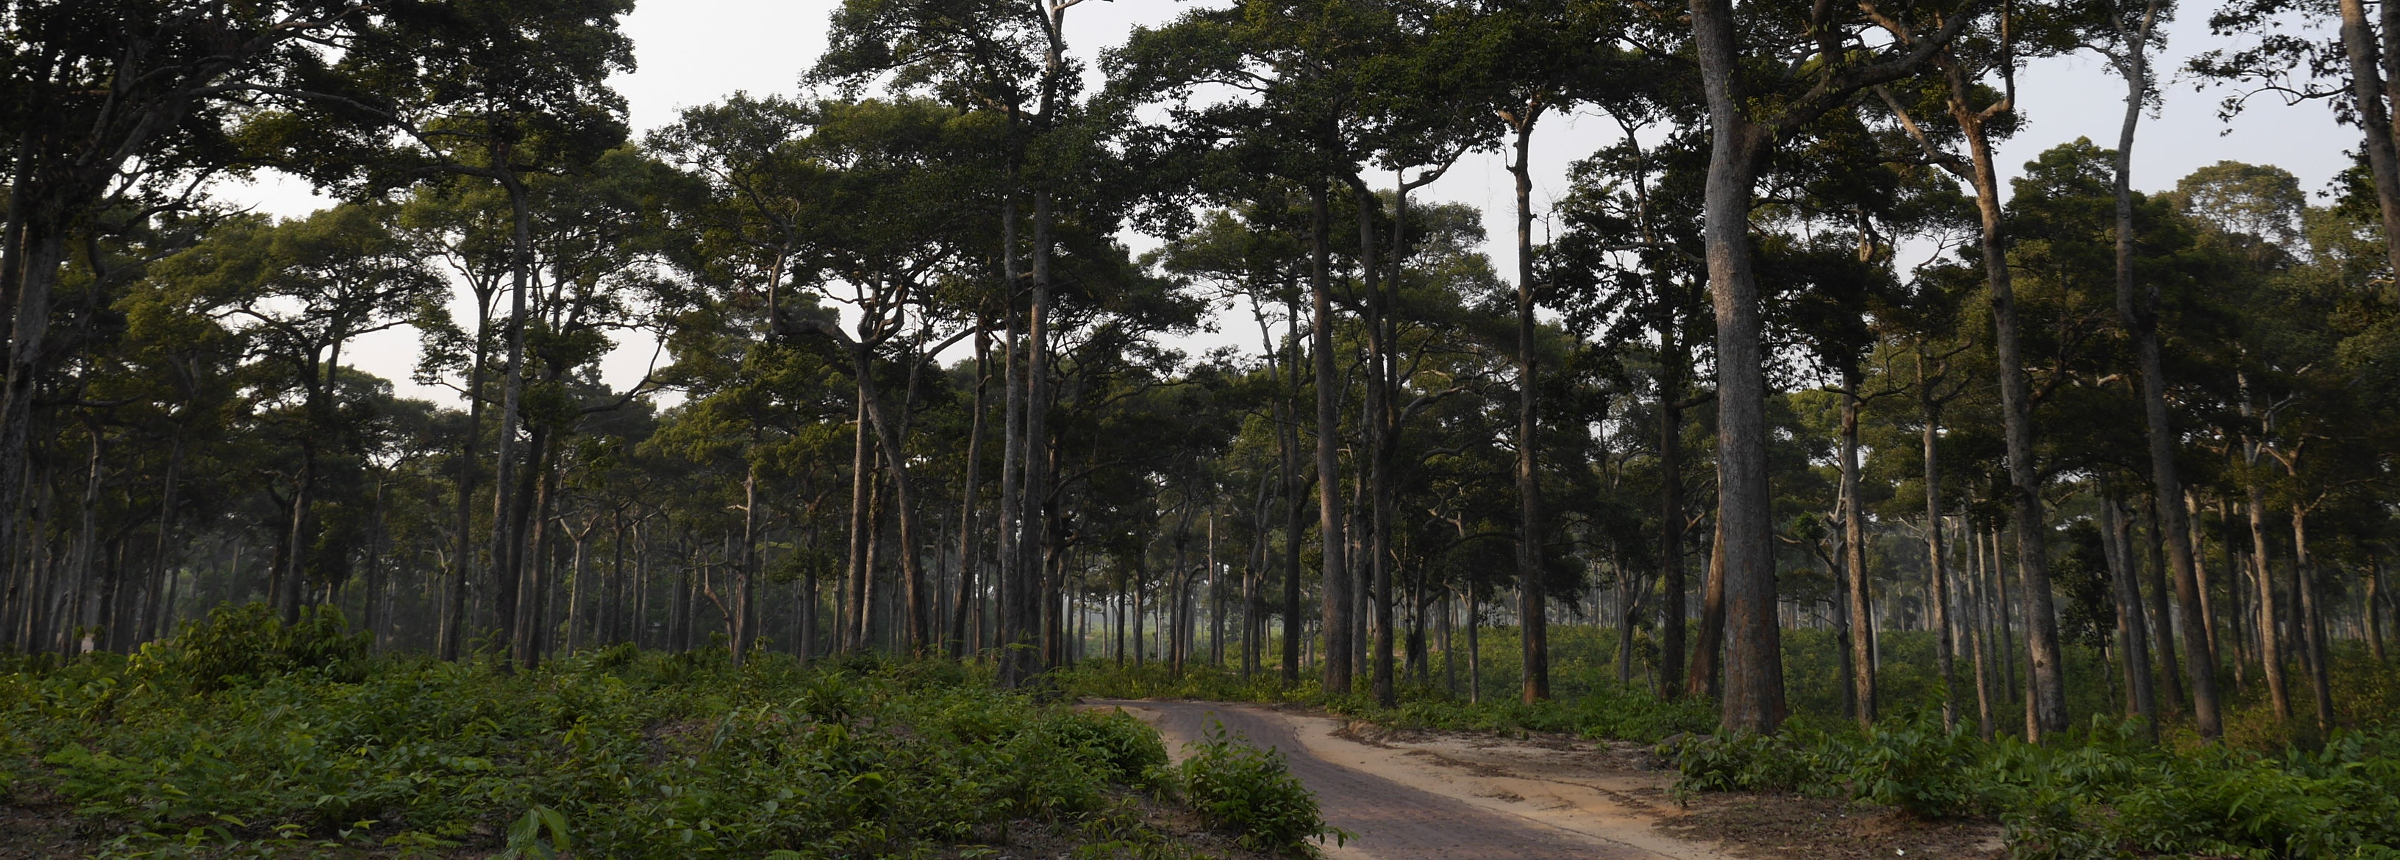 Garjan trees, once widespread in eastern Bangladesh, have since become degraded due to population pressure, illegal felling, encroachment, and erosion.